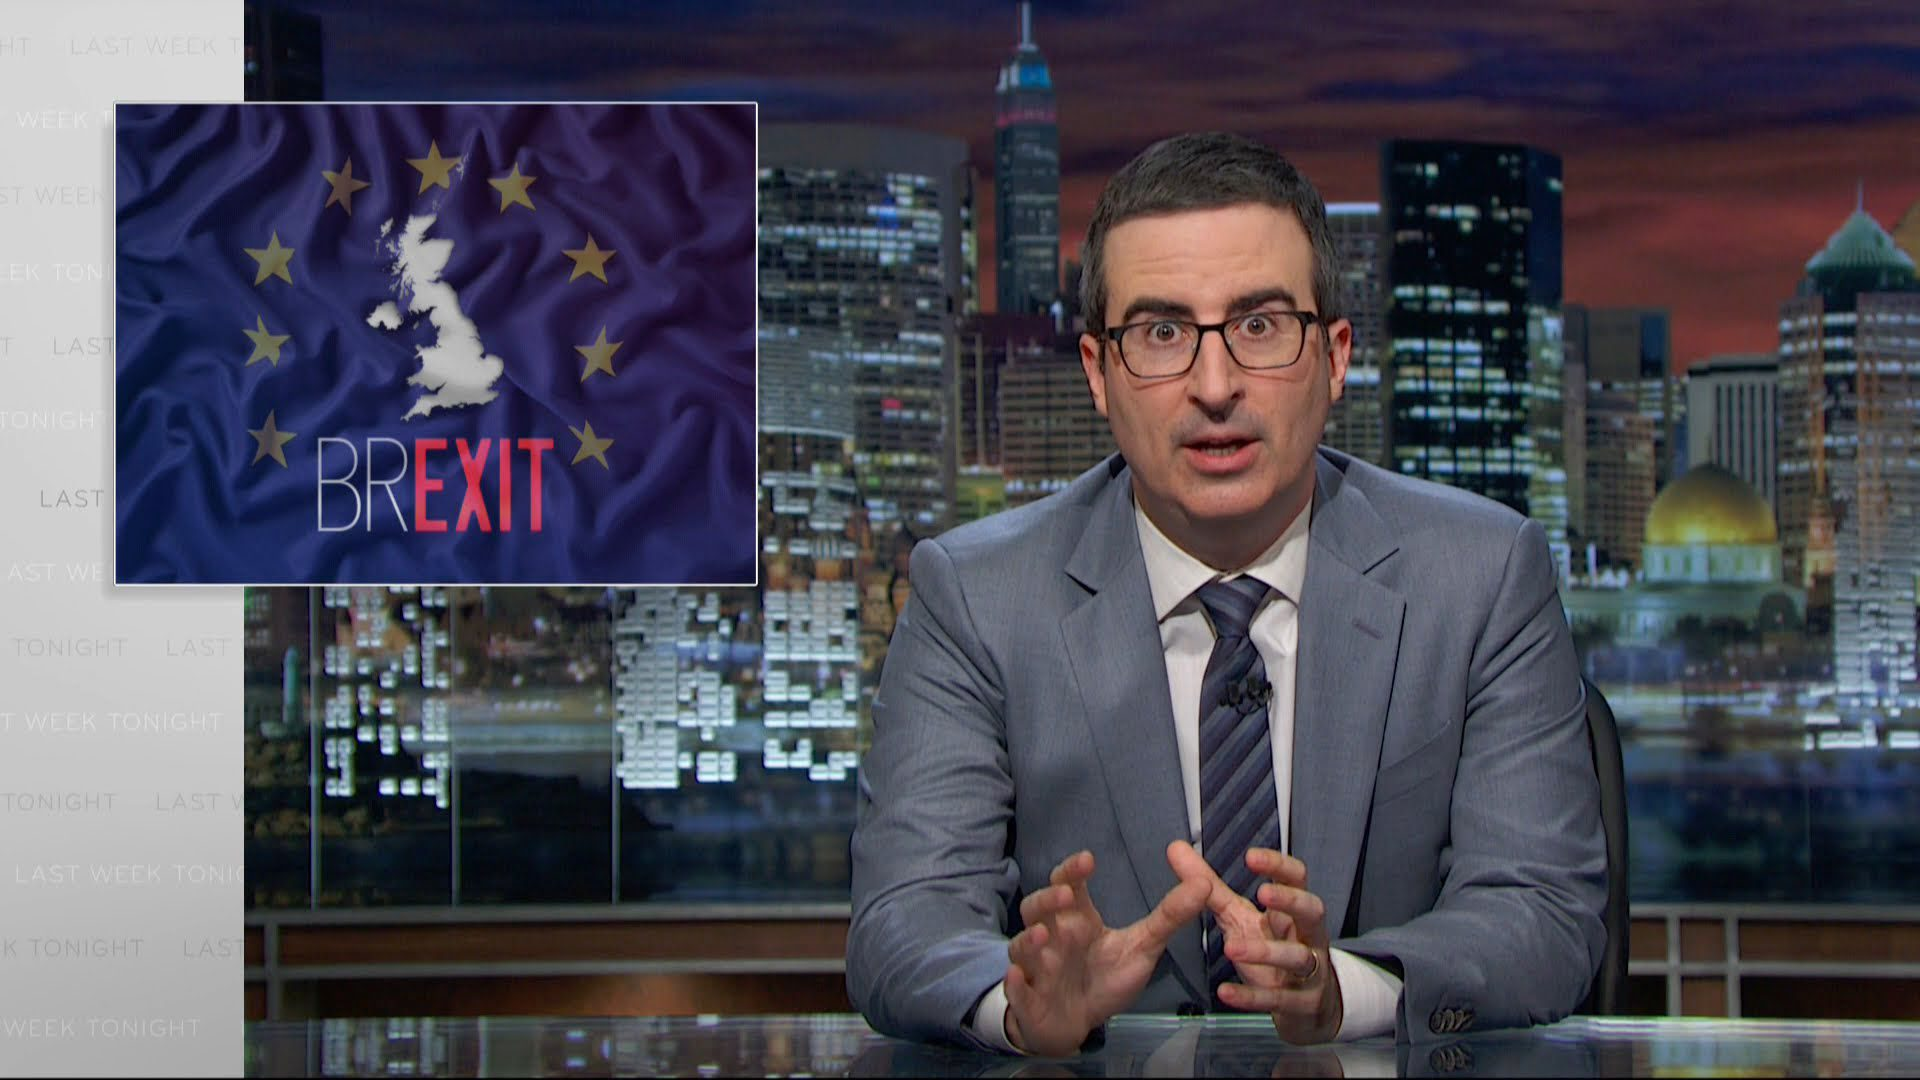 Last Week Tonight on Brexit